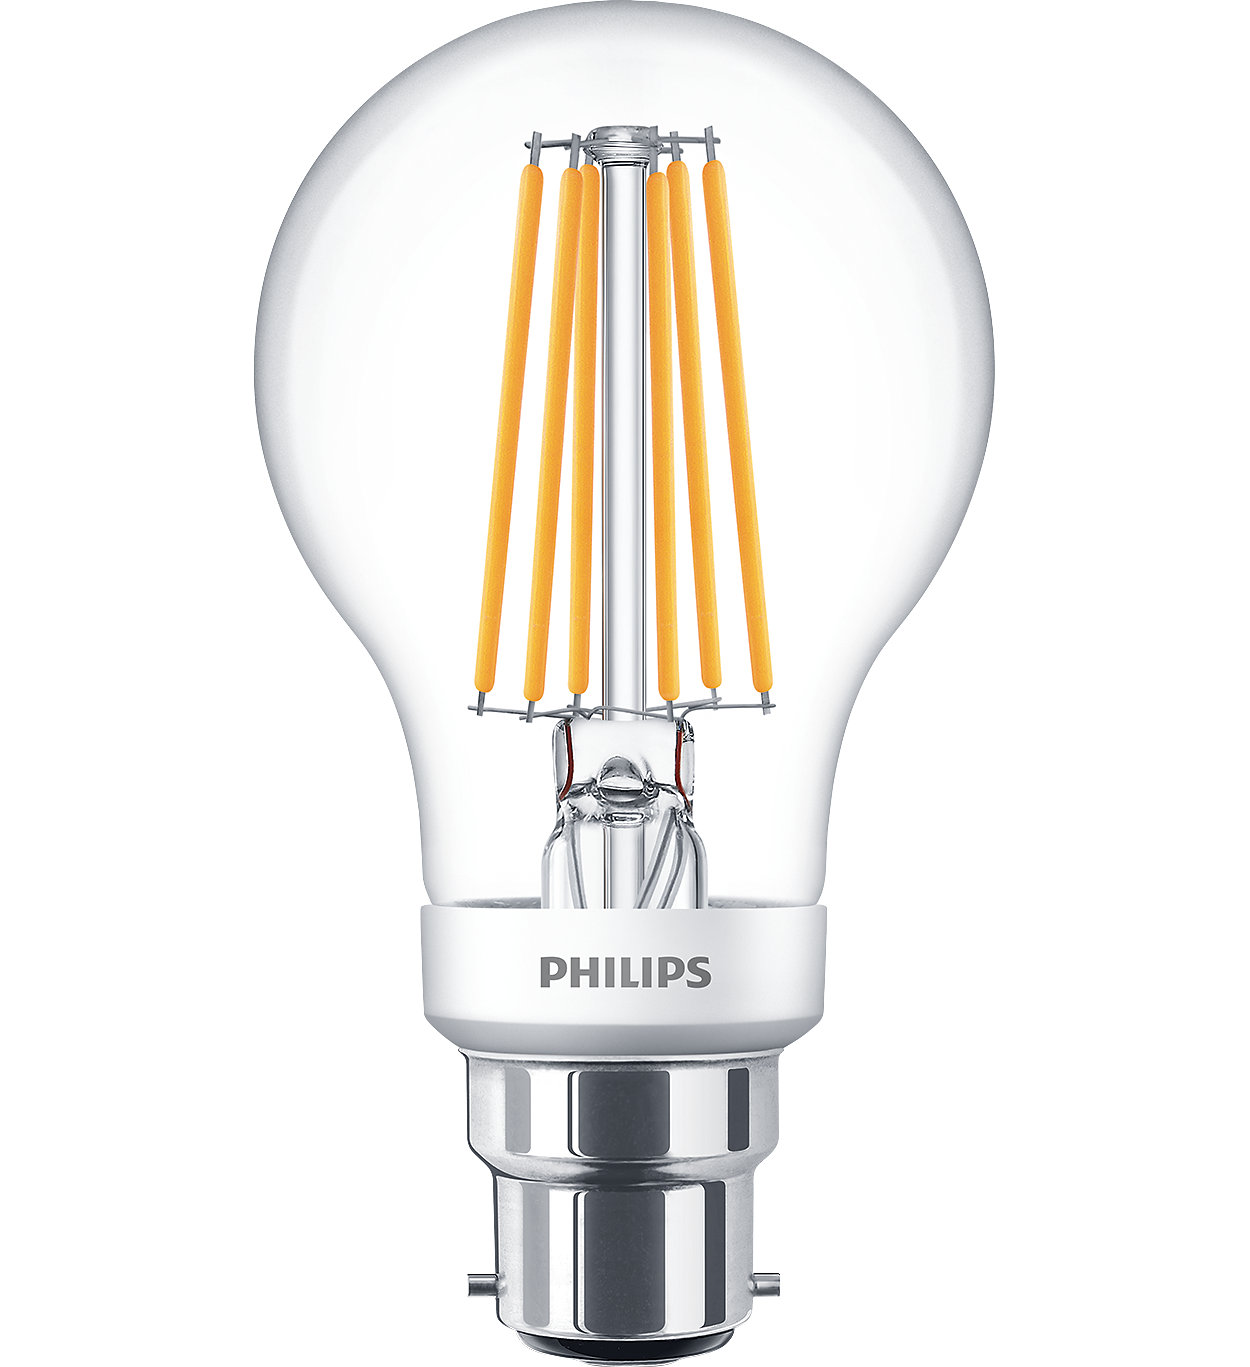 Switch light settings without switching bulbs